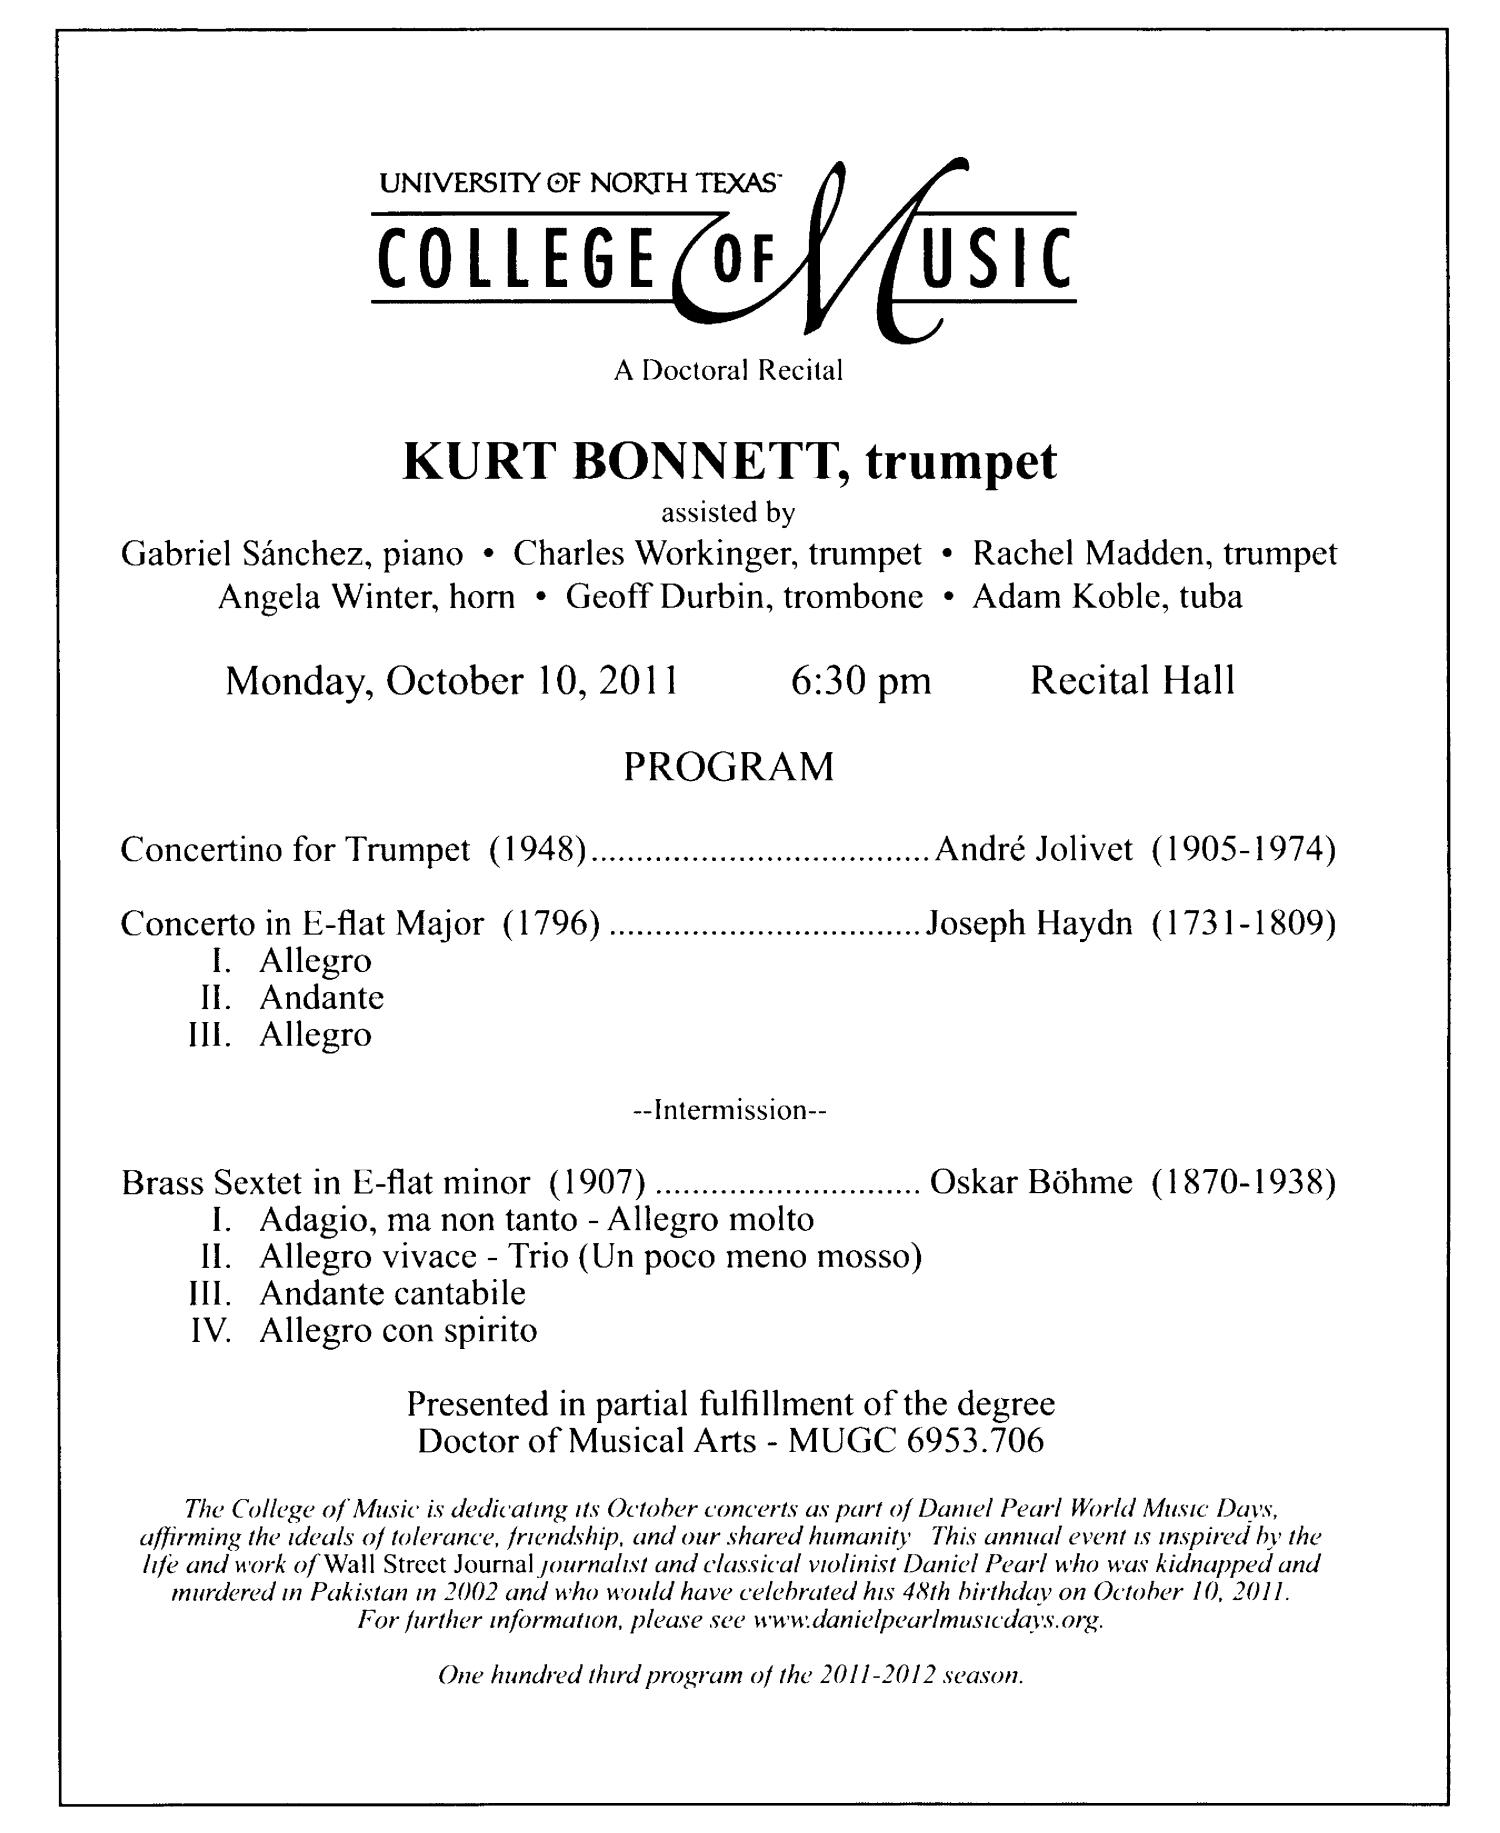 College of Music Program Book 2011-2012: Student Performances, Volume 1                                                                                                      22